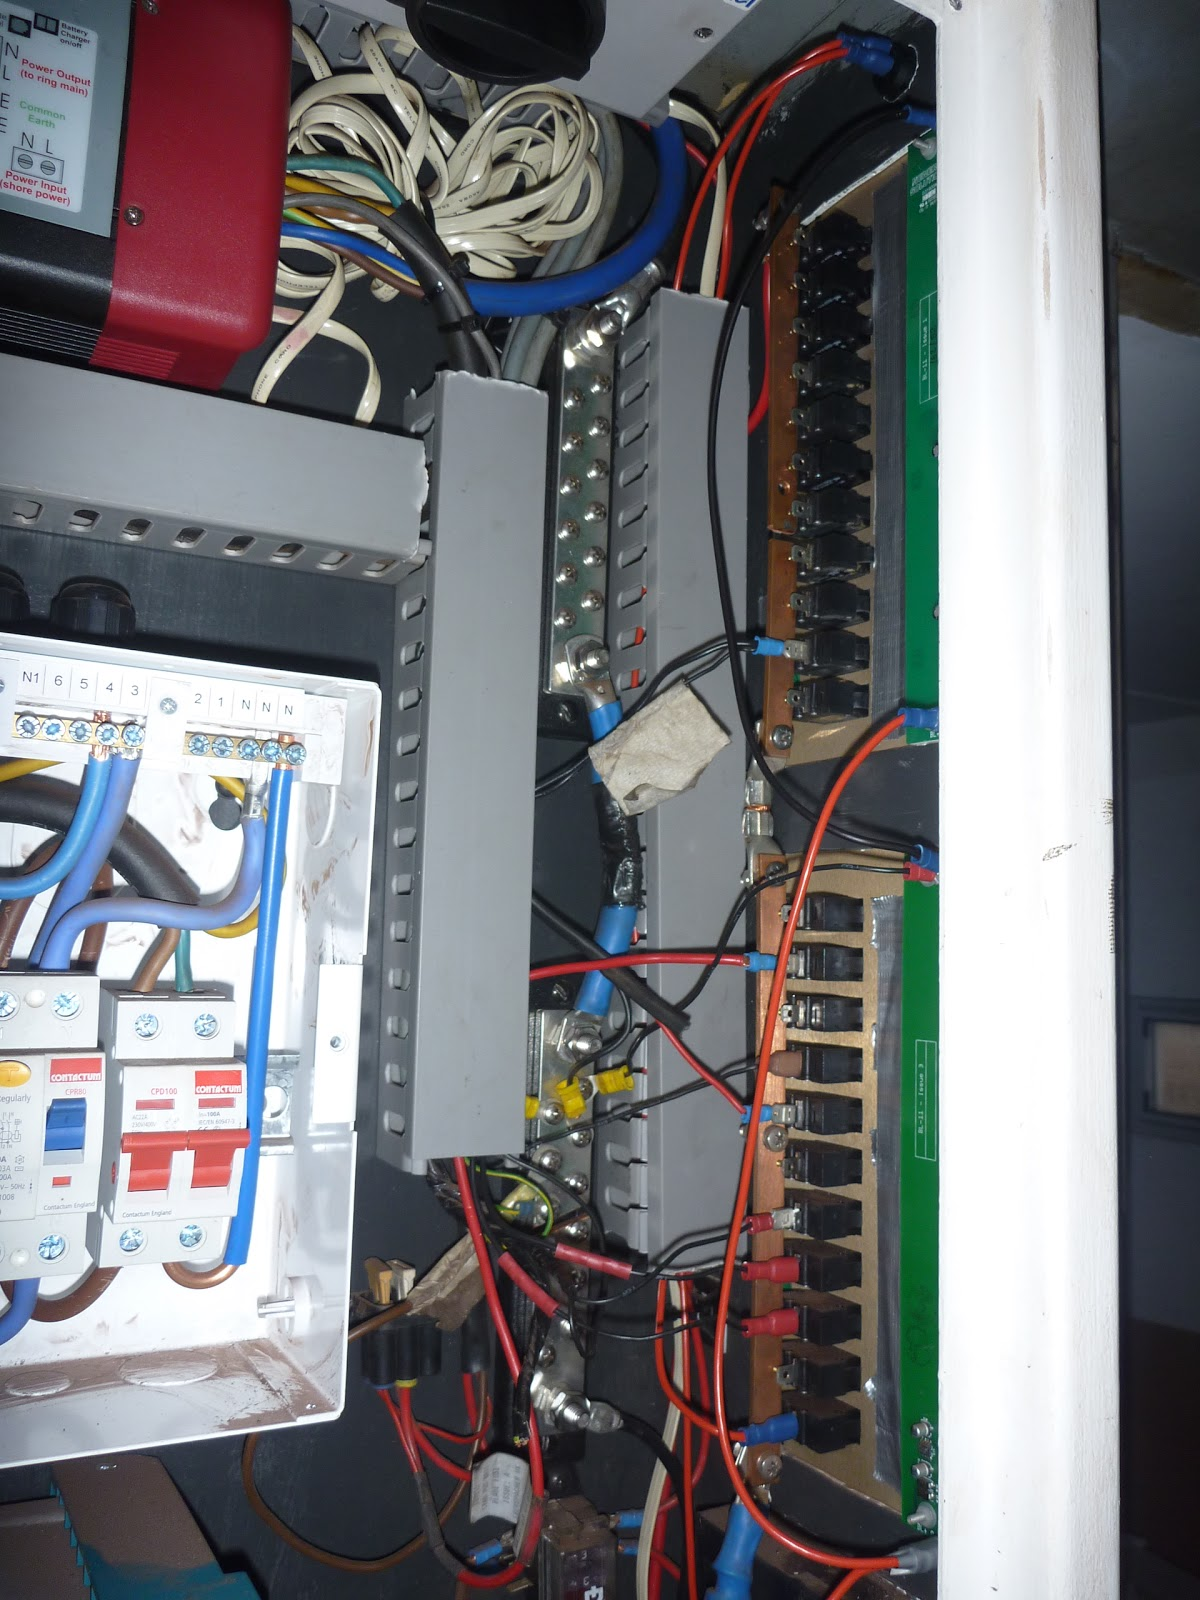 Messy Truck Electrical Wiring Wire Data Schema Connecting Logisty Daitem Intercoms To Cb1 Control Panel Jim The Tidying Up Dc Power Distribution Properly A Breaker